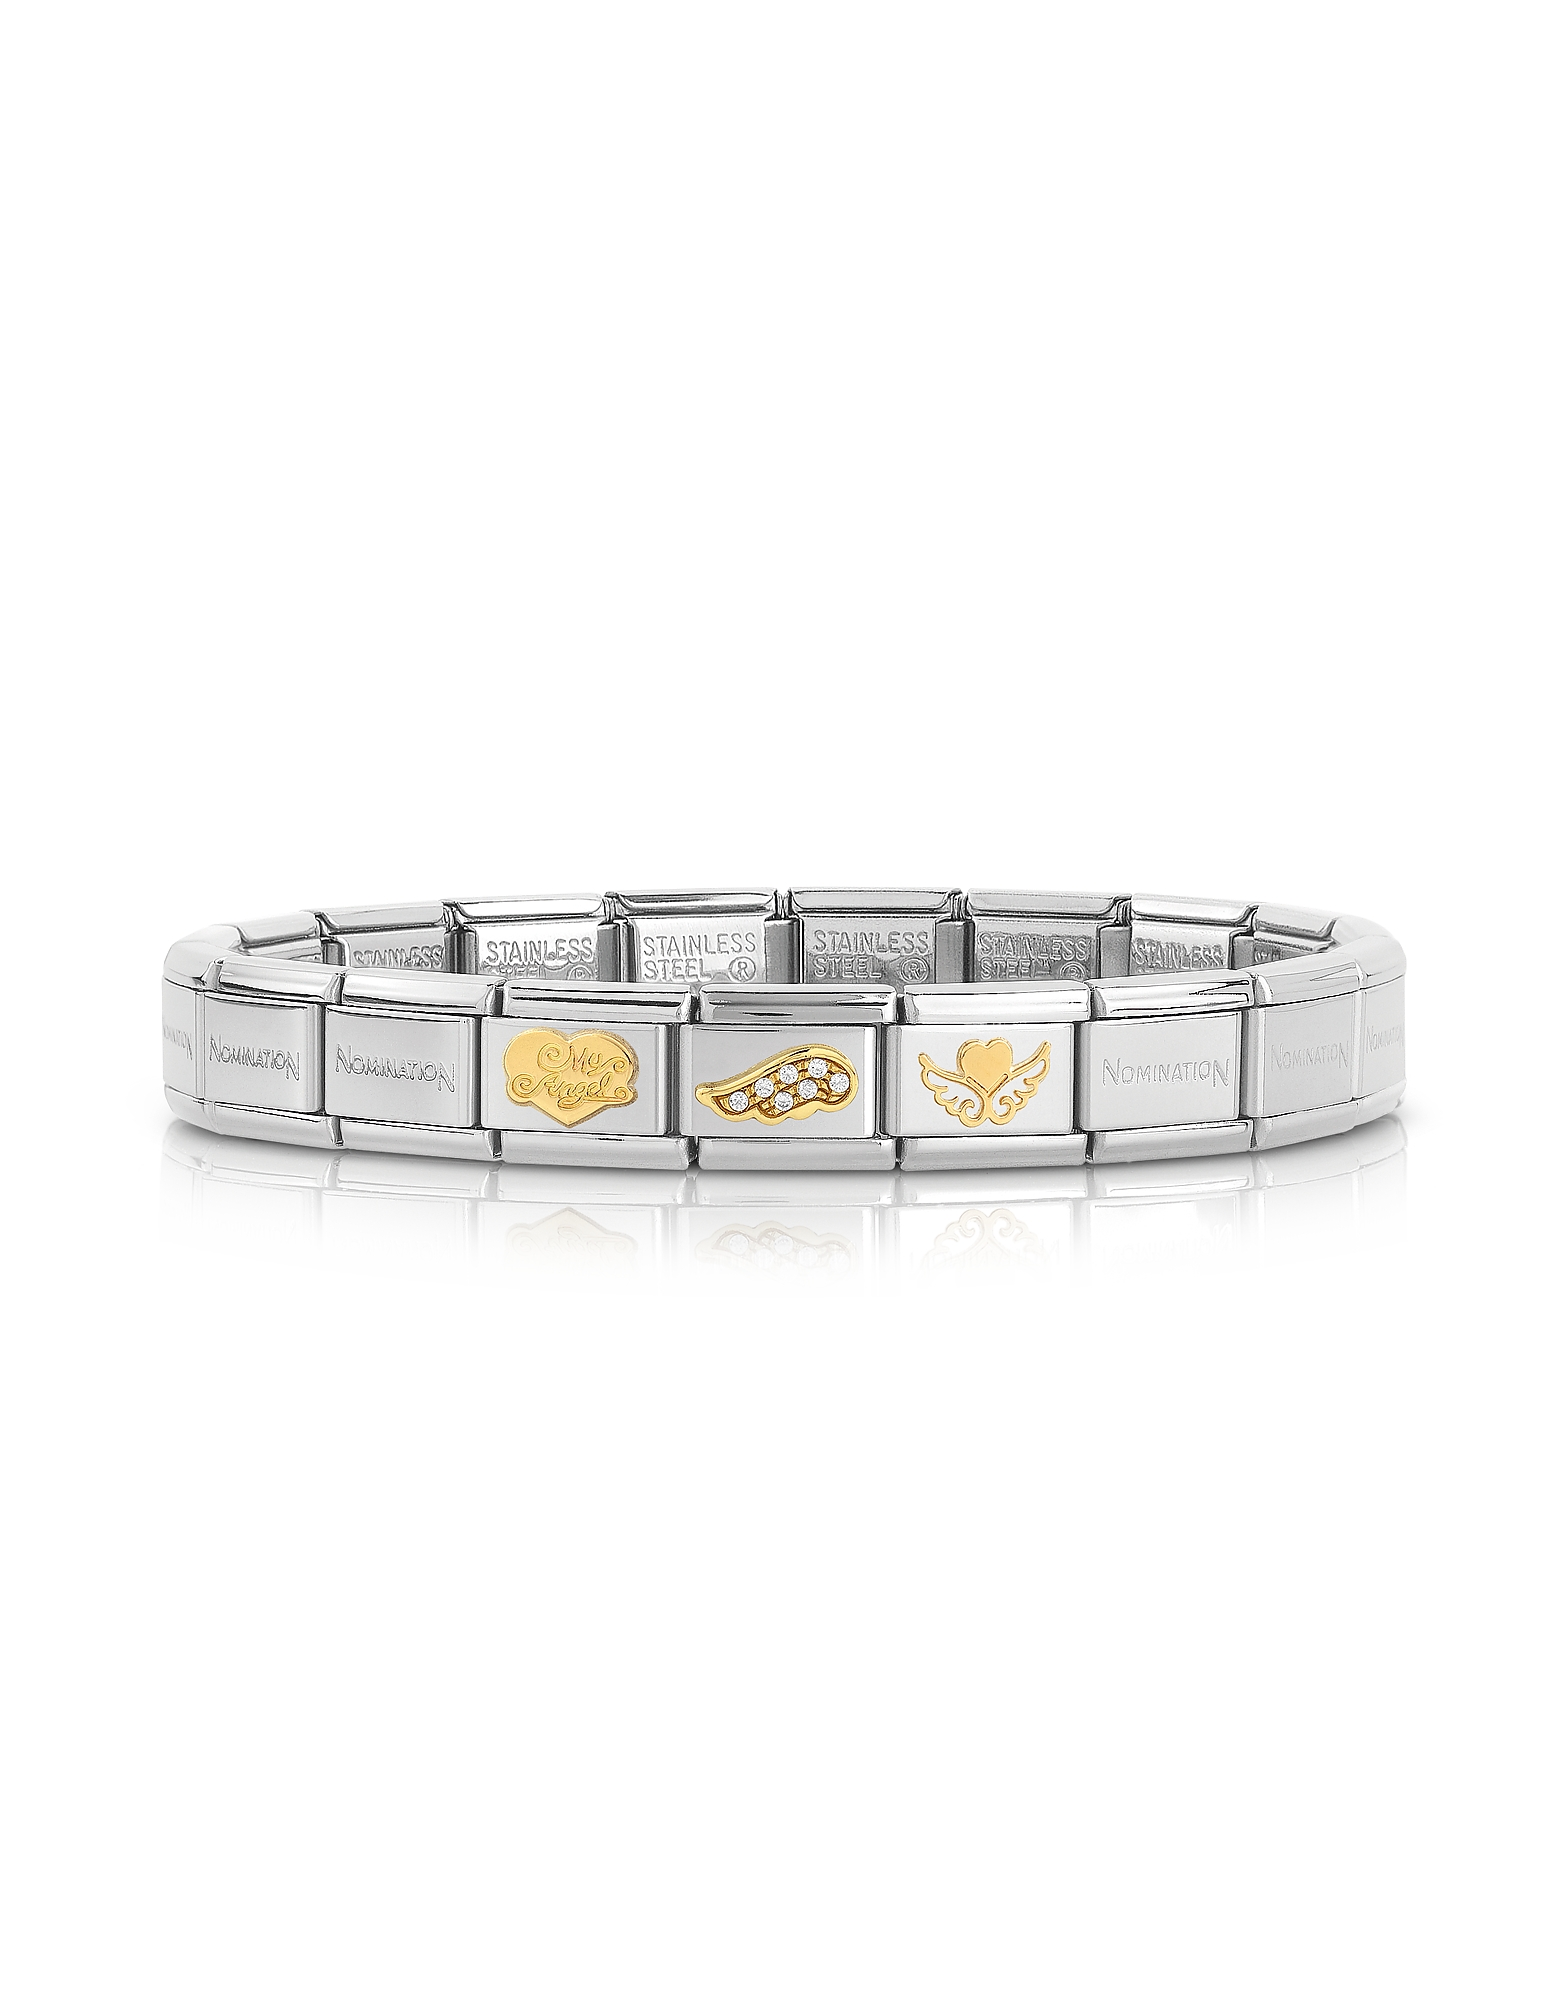 Nomination Bracelets, My Angel and Wings Golden Stainless Steel Bracelet w/Cubic Zirconia